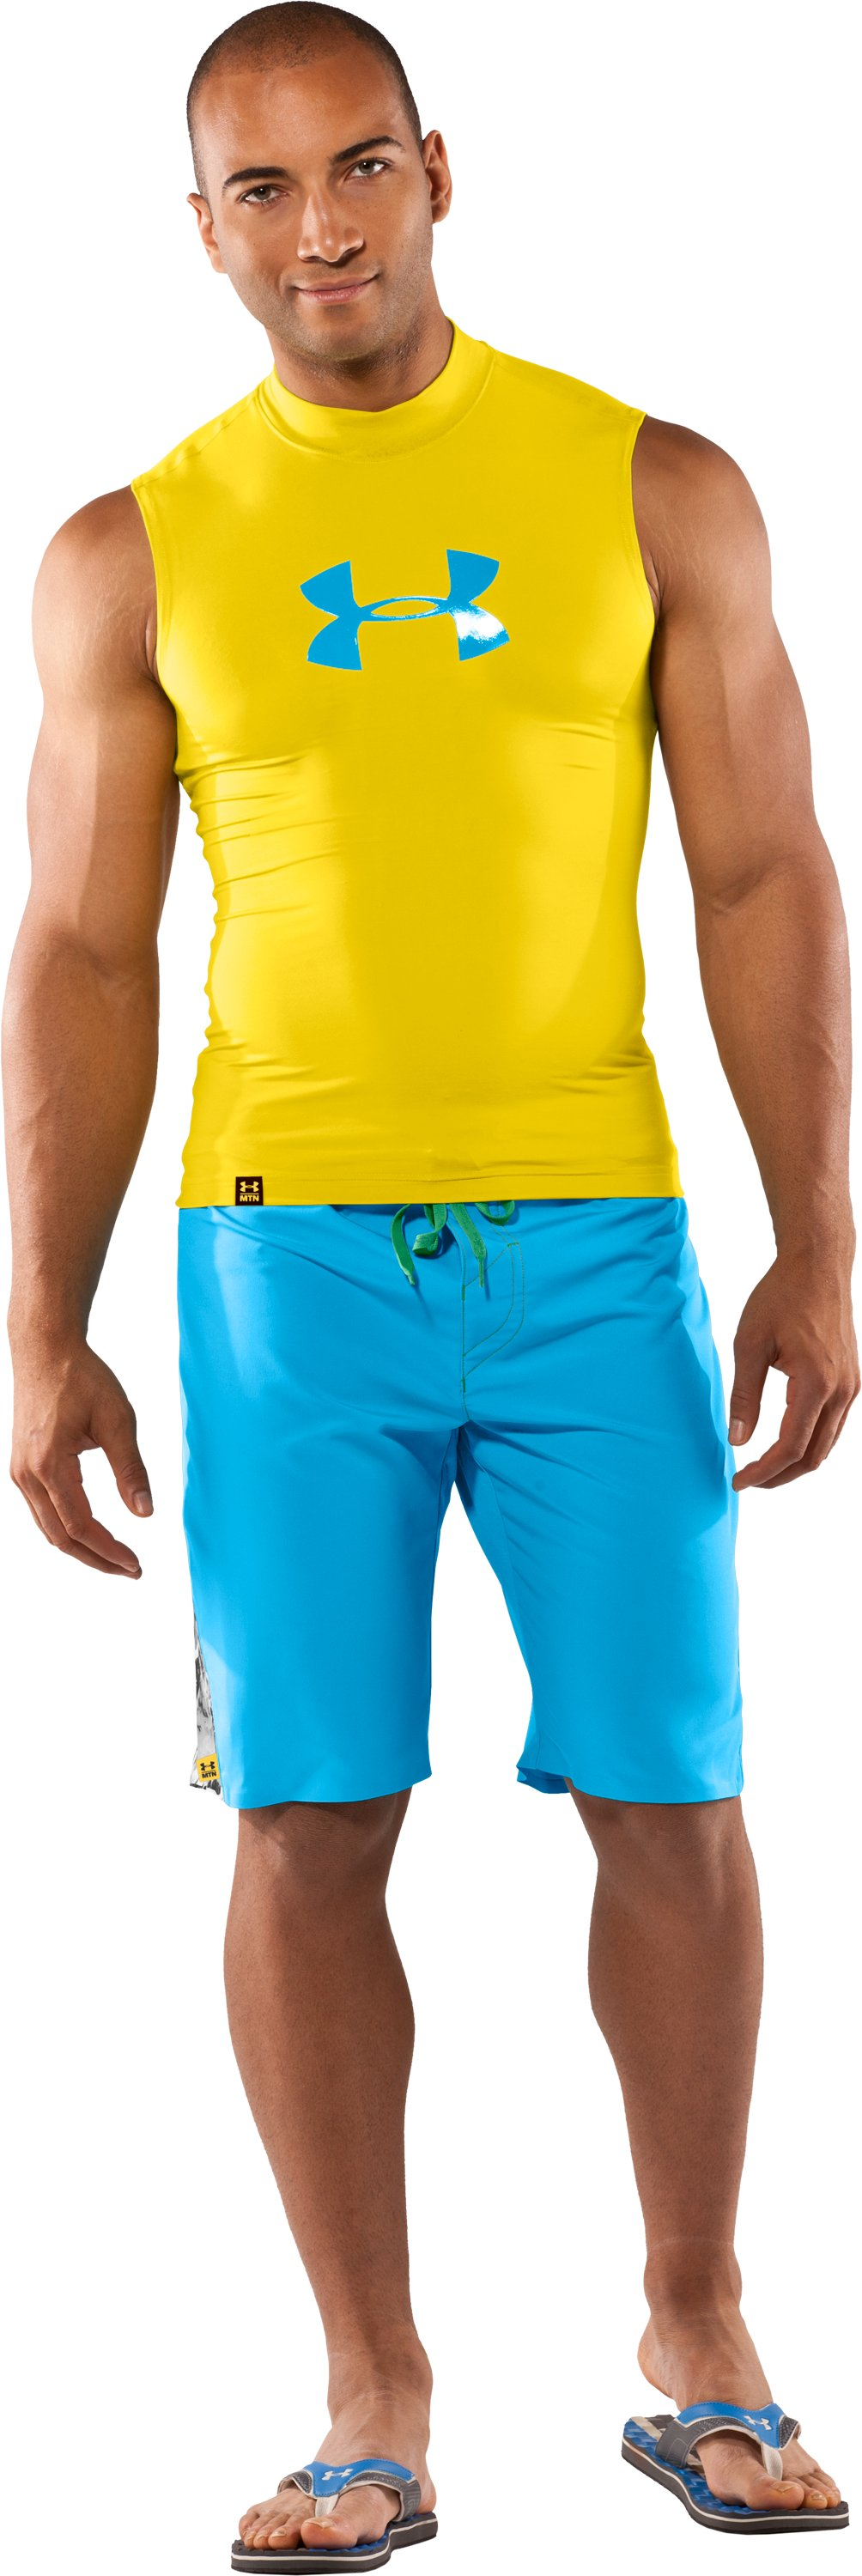 Men's Proaid Sleeveless Rash Guard, Lemonade, Front